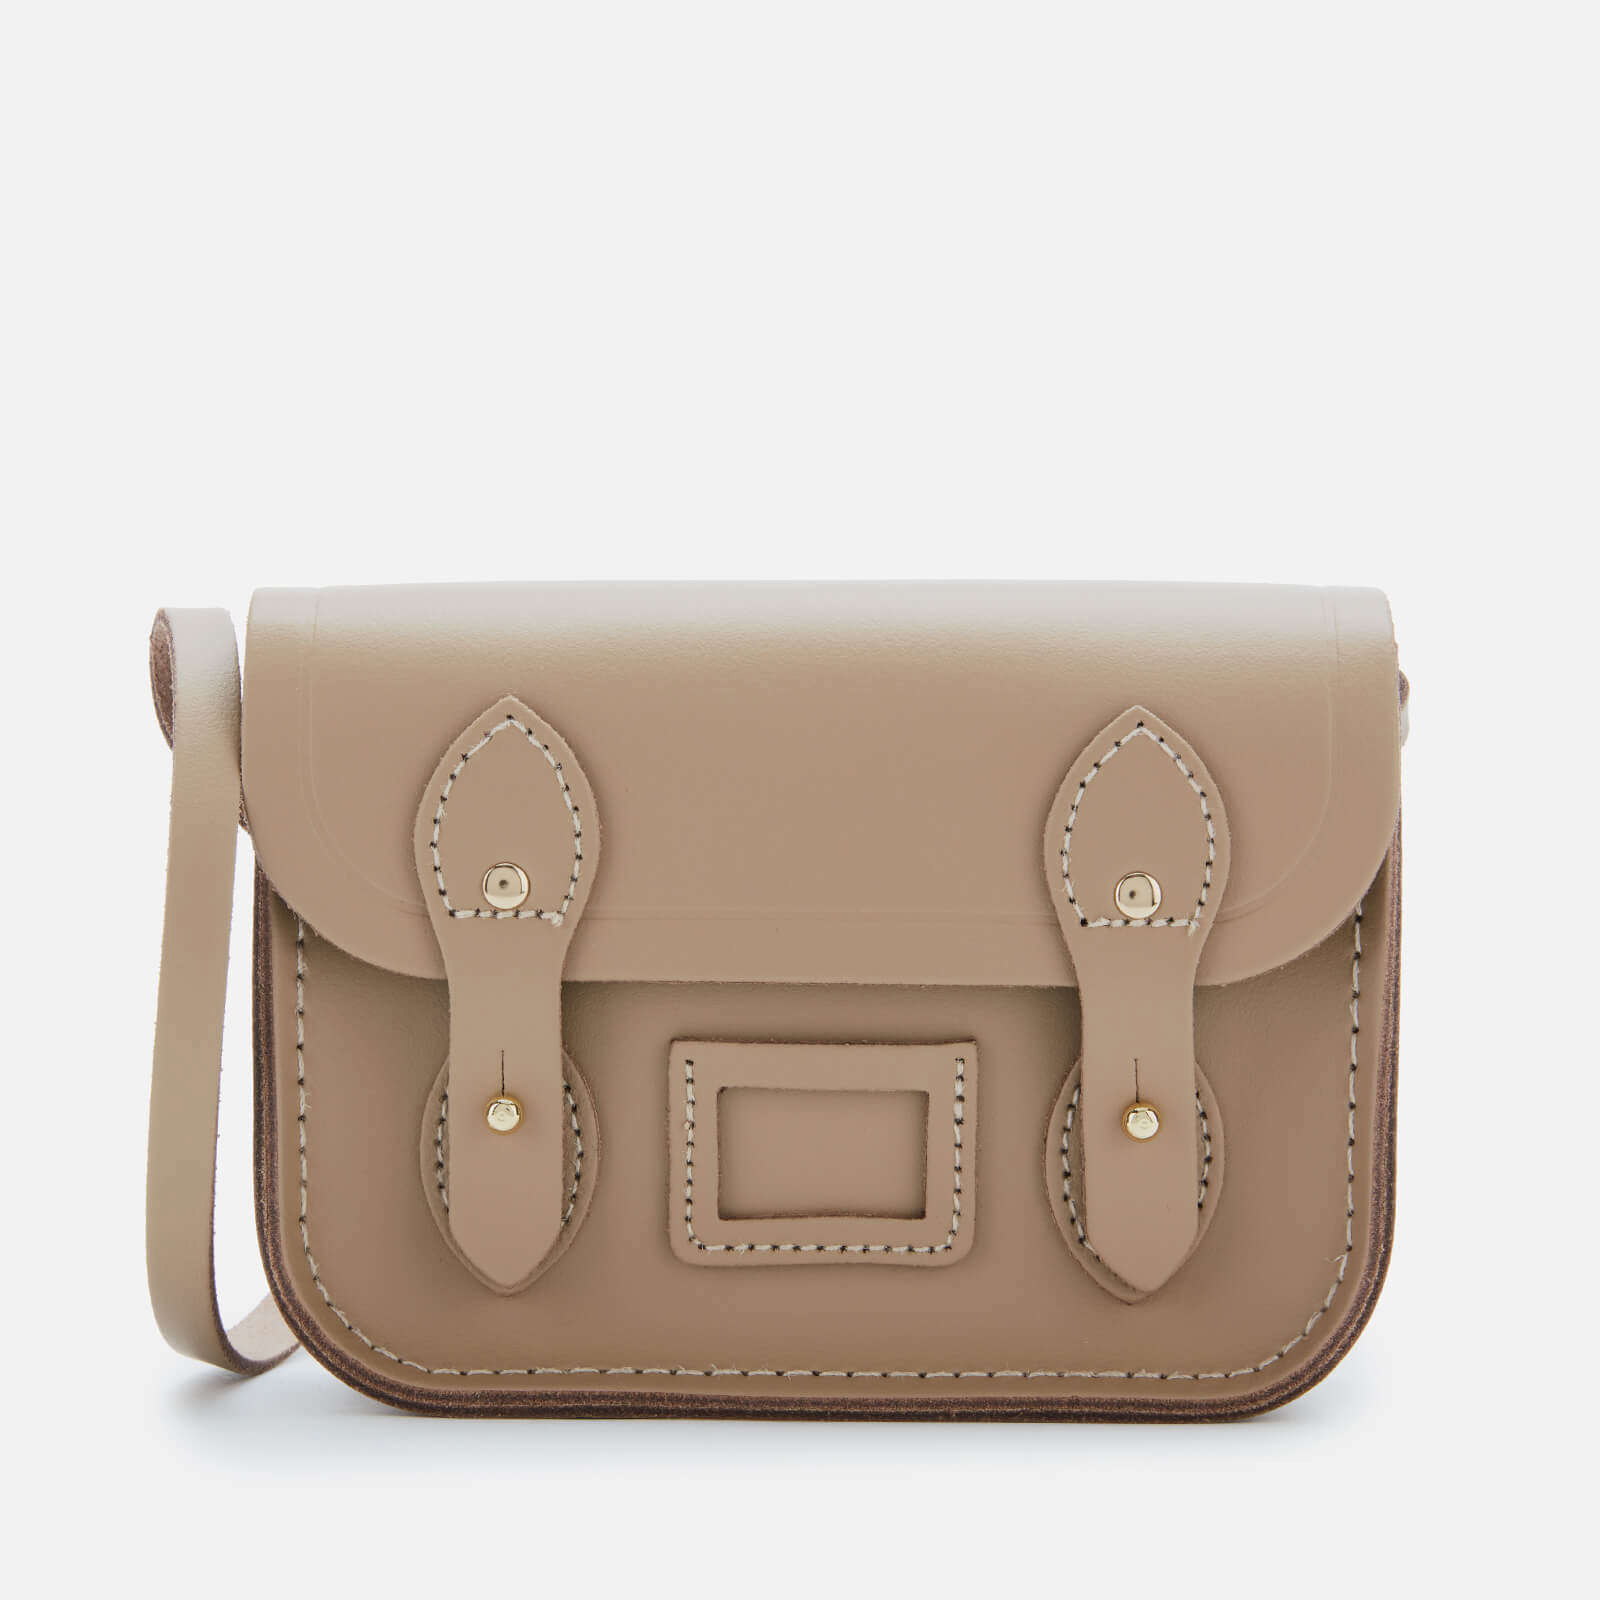 The Cambridge Satchel Company 剑桥包 Tiny 可爱小款 ¥299.28